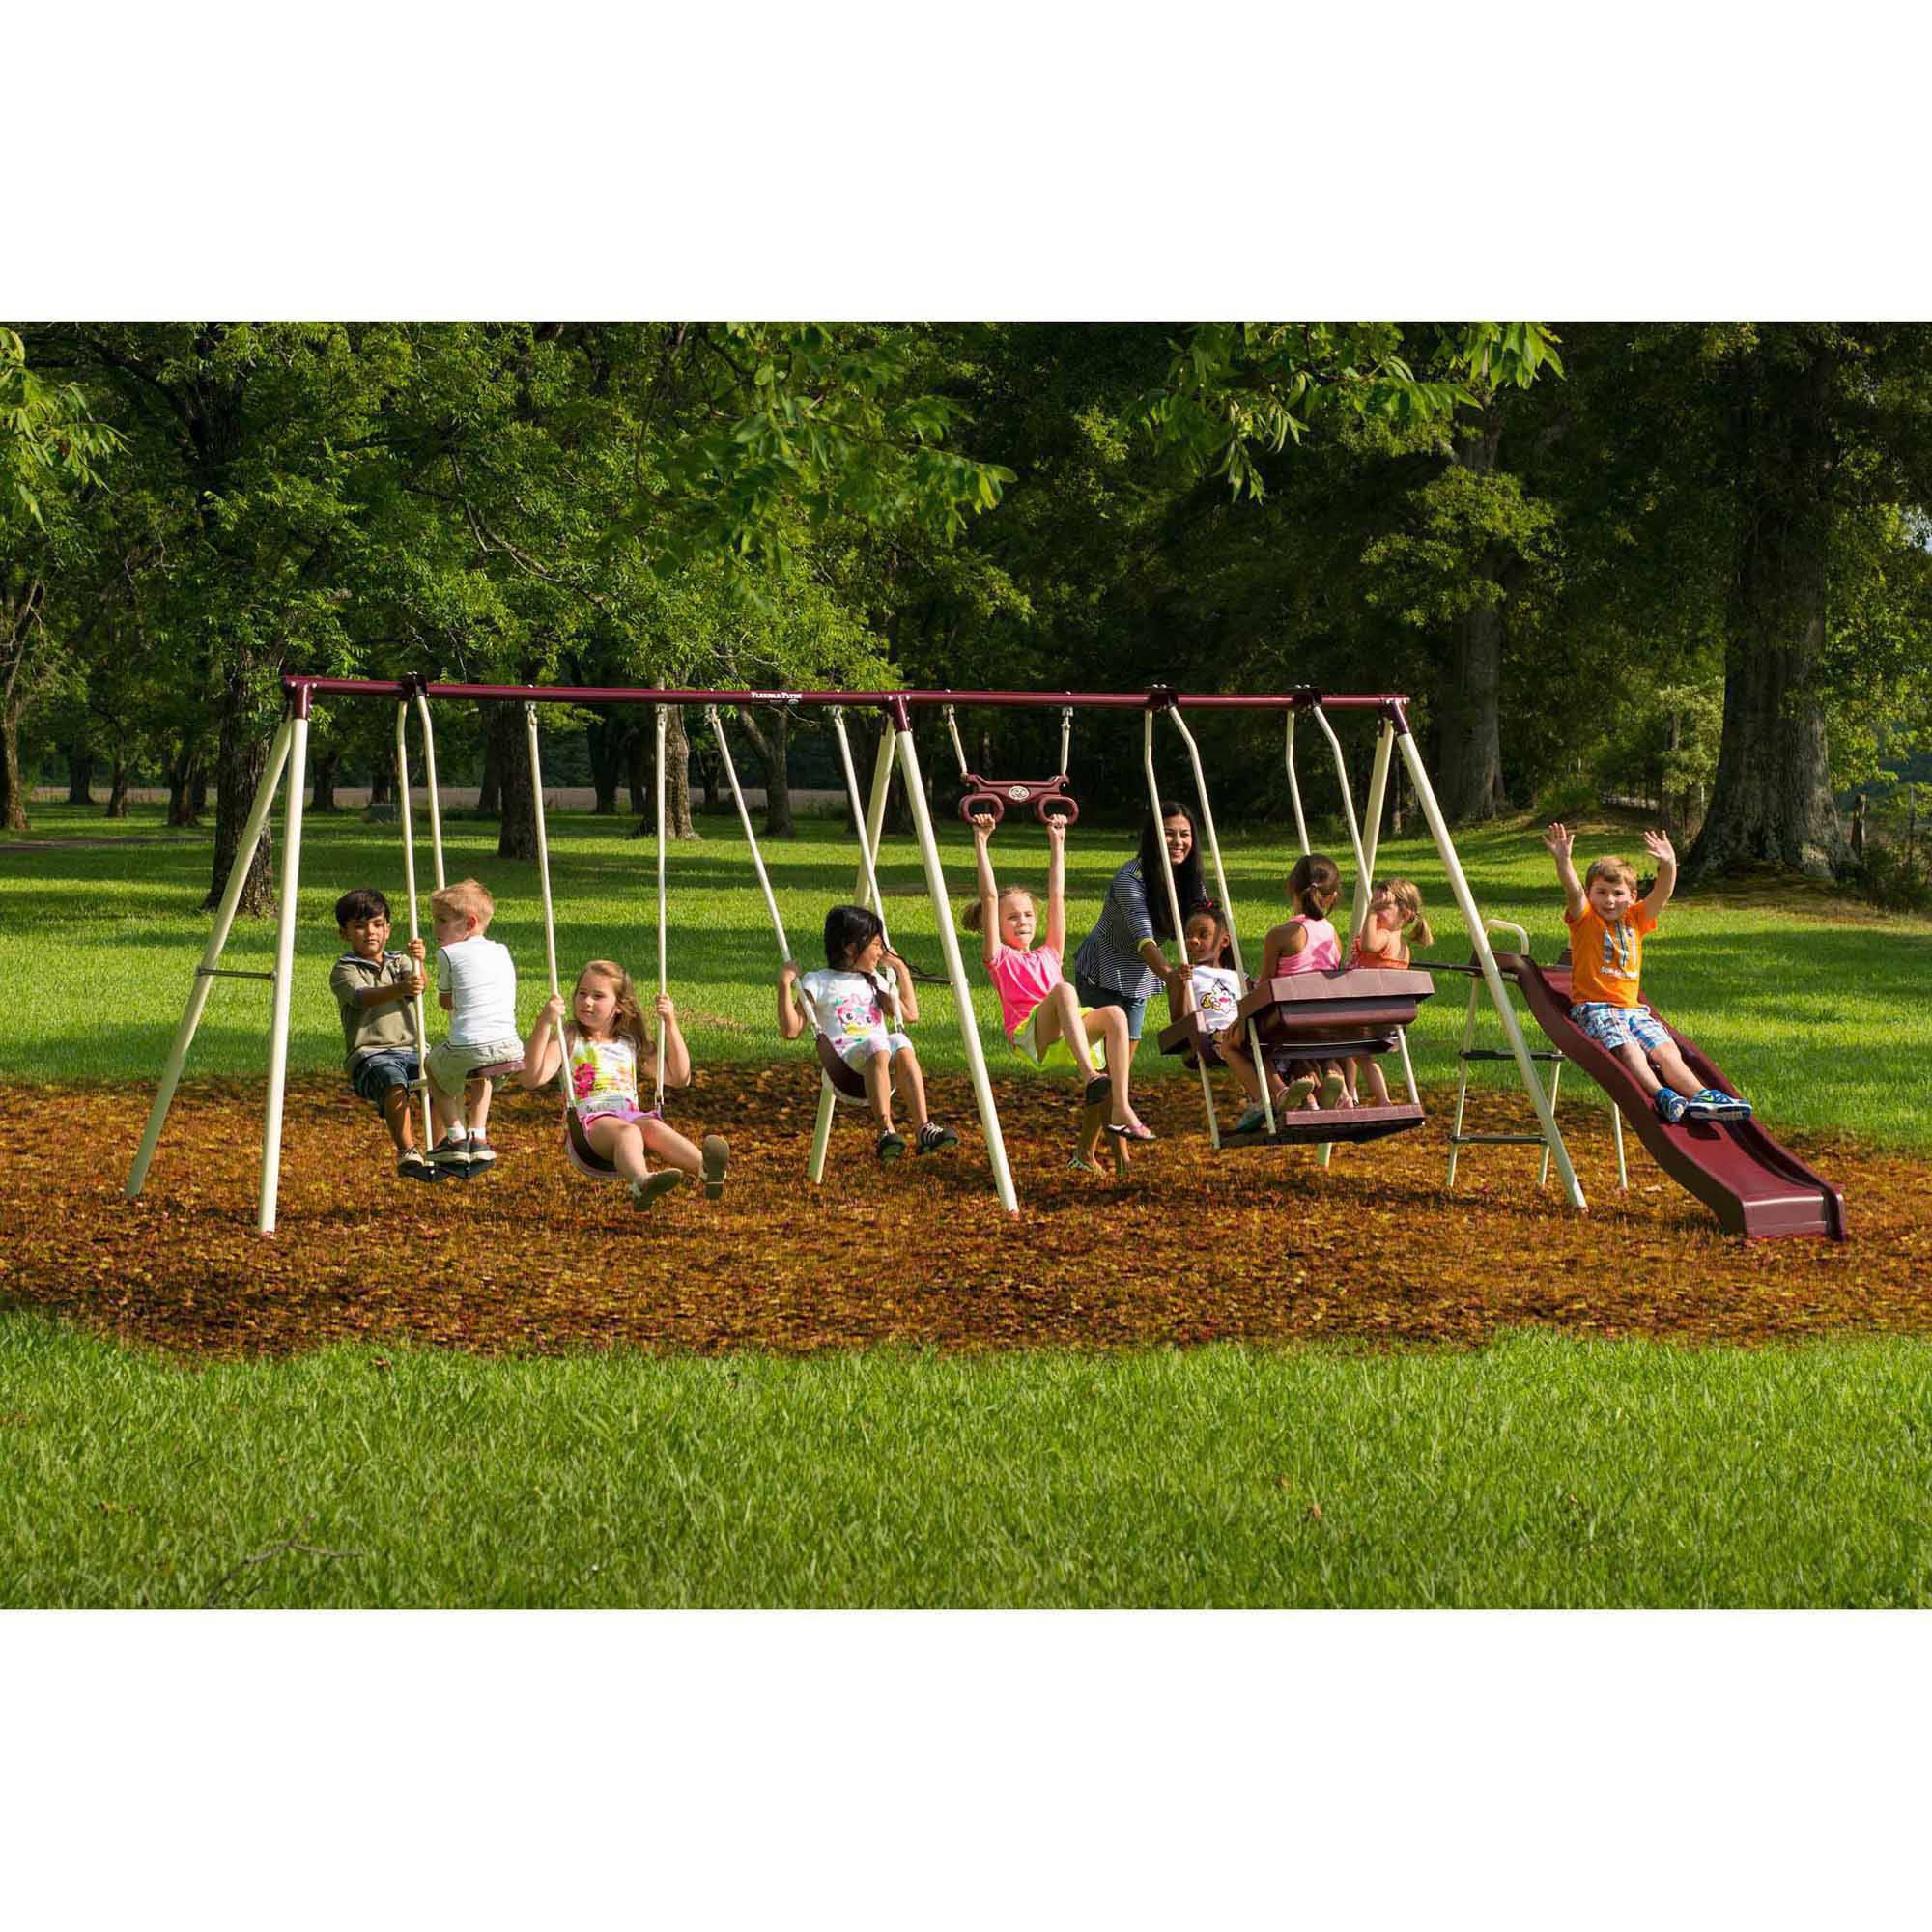 Incroyable Flexible Flyer Play Park Metal Swing Set